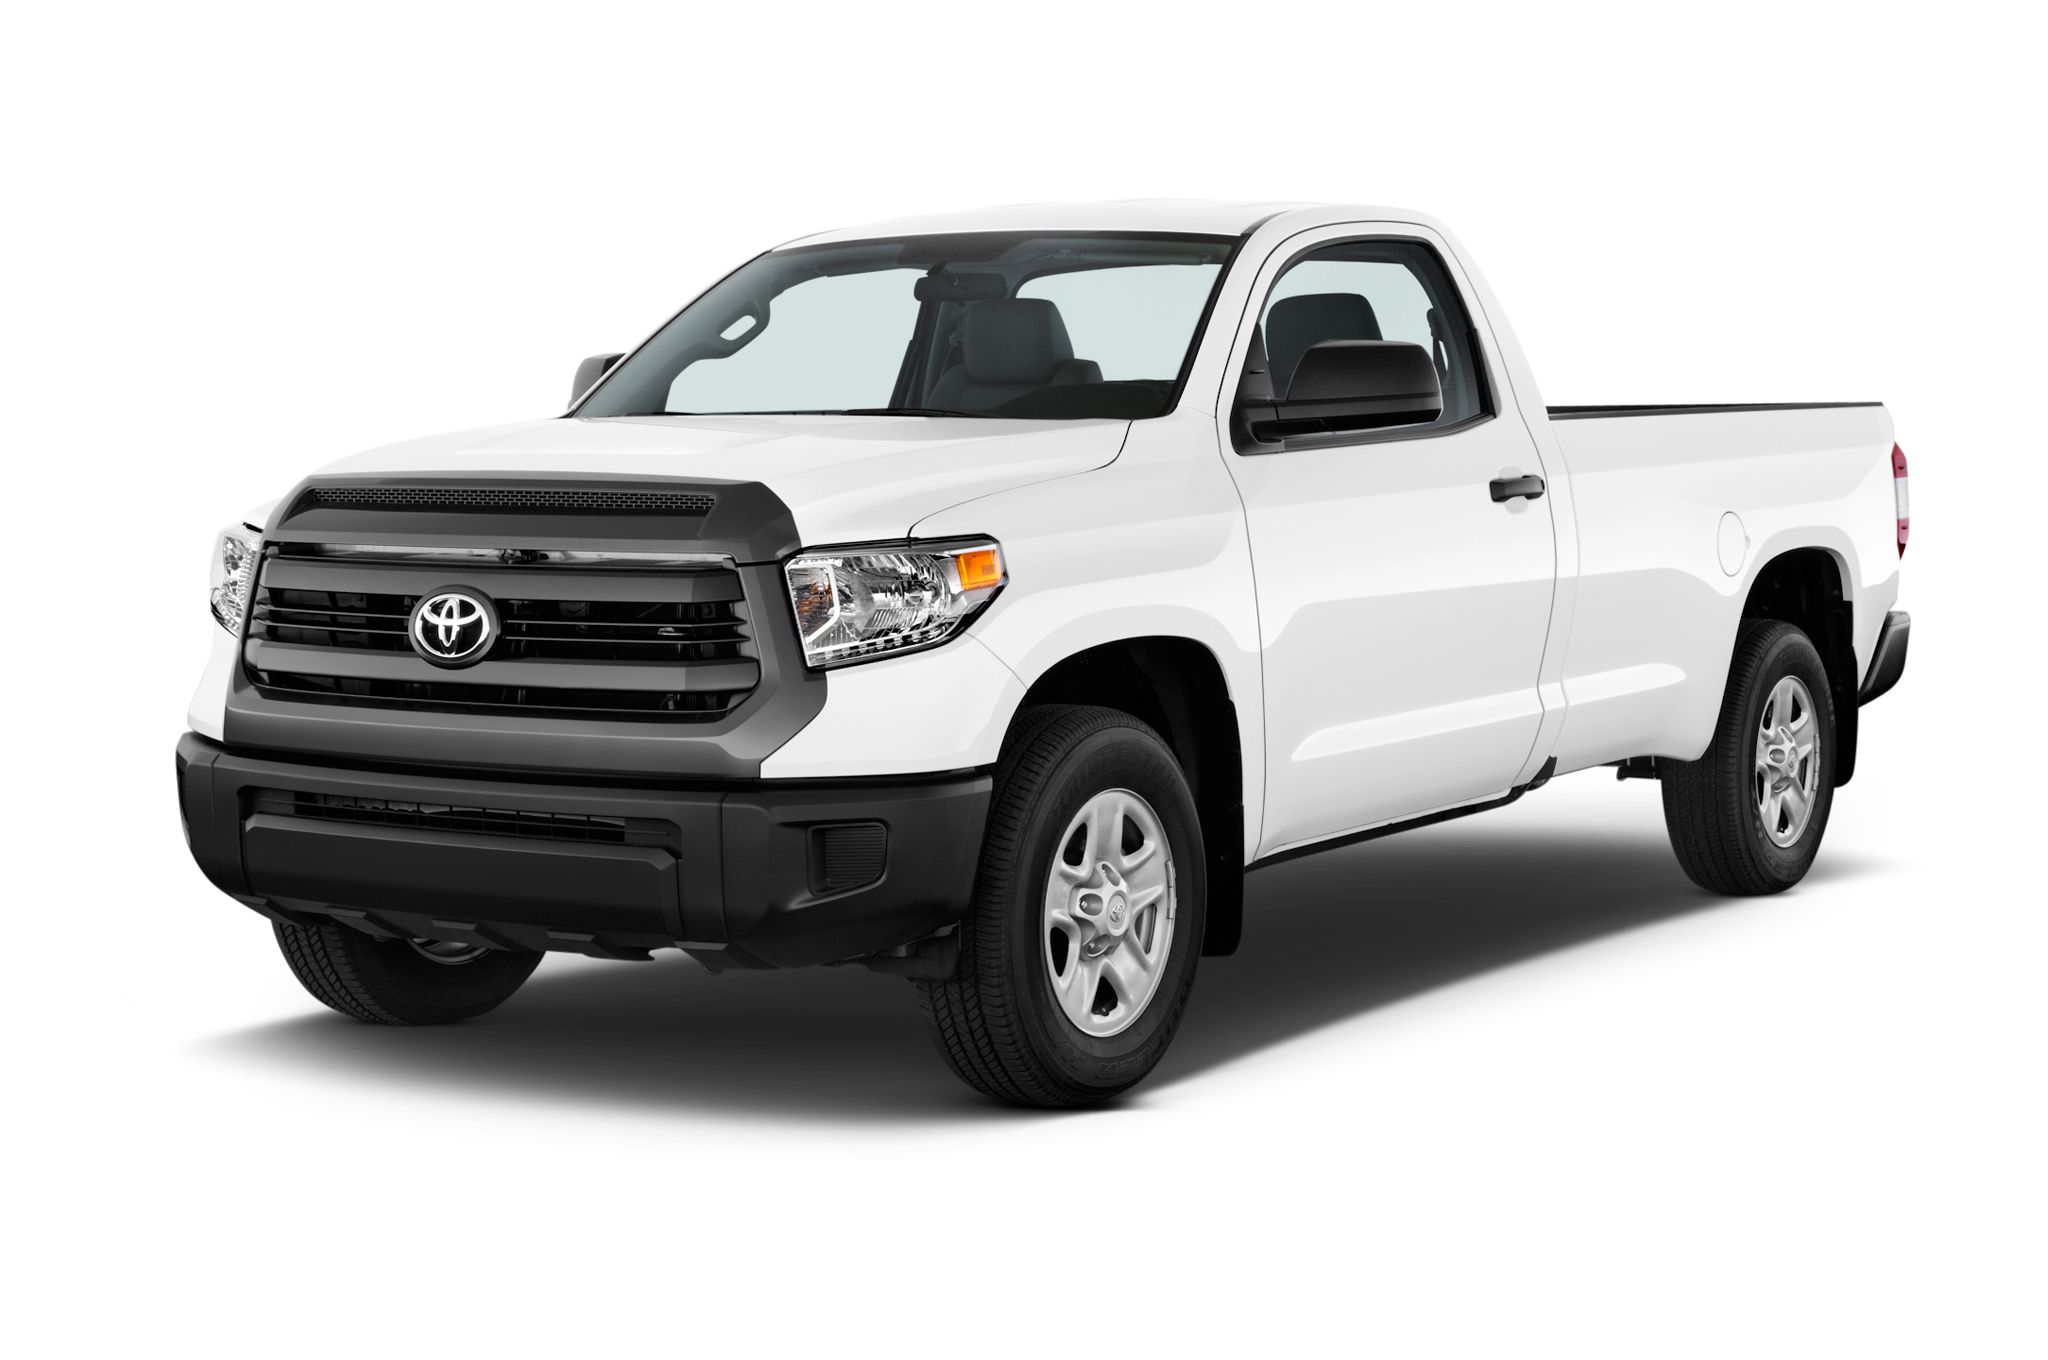 2014 Toyota Tundra Reviews and Rating